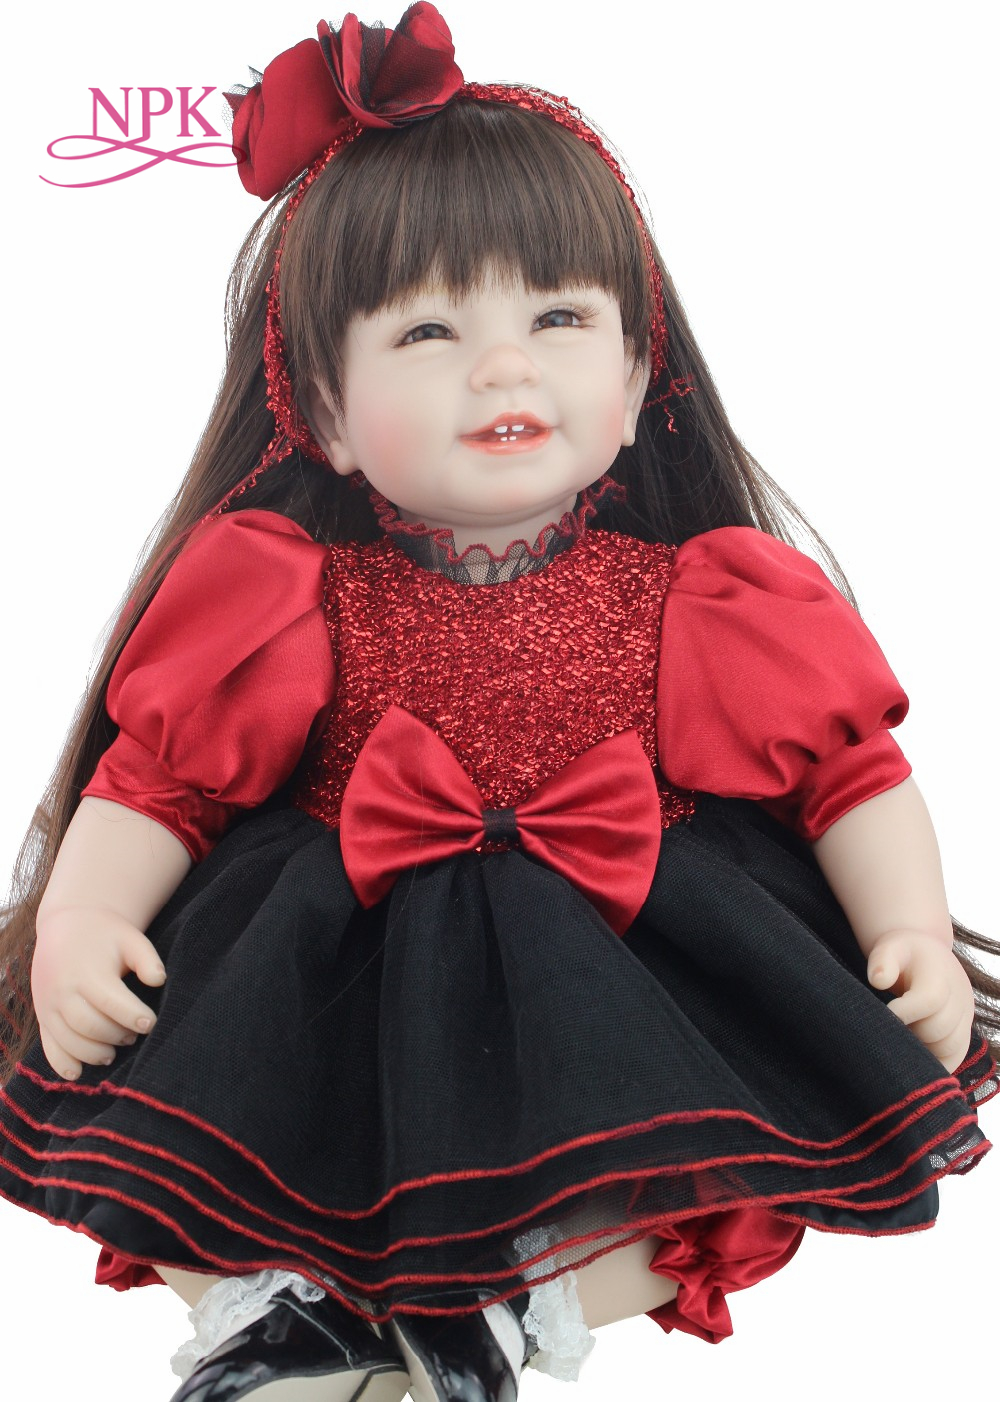 NPK 2016 NEW designl wholesale baby dolls fashion doll accompany toys with earily education doll